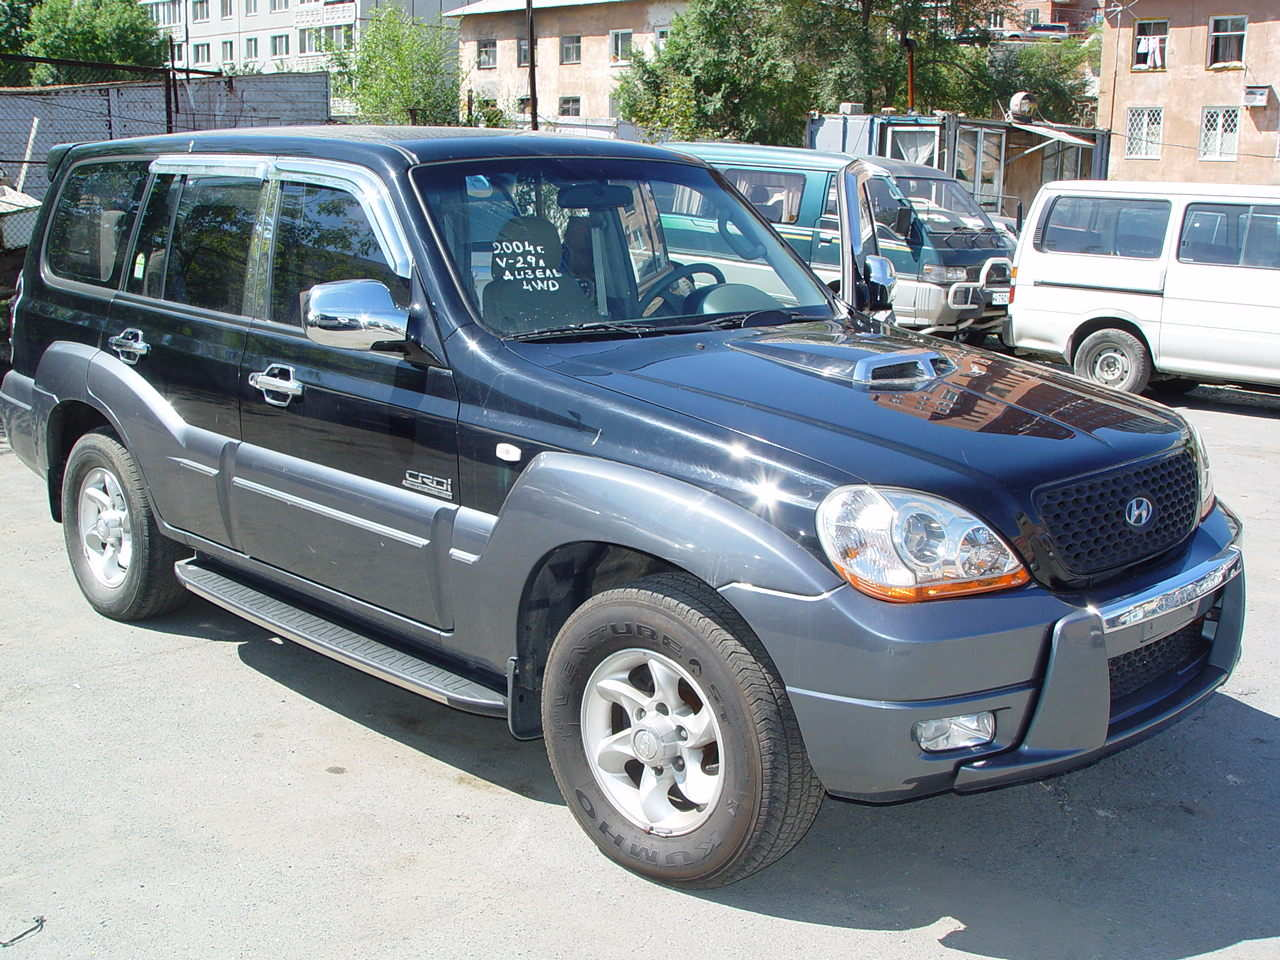 2004 hyundai terracan photos 2 9 diesel automatic for sale. Black Bedroom Furniture Sets. Home Design Ideas